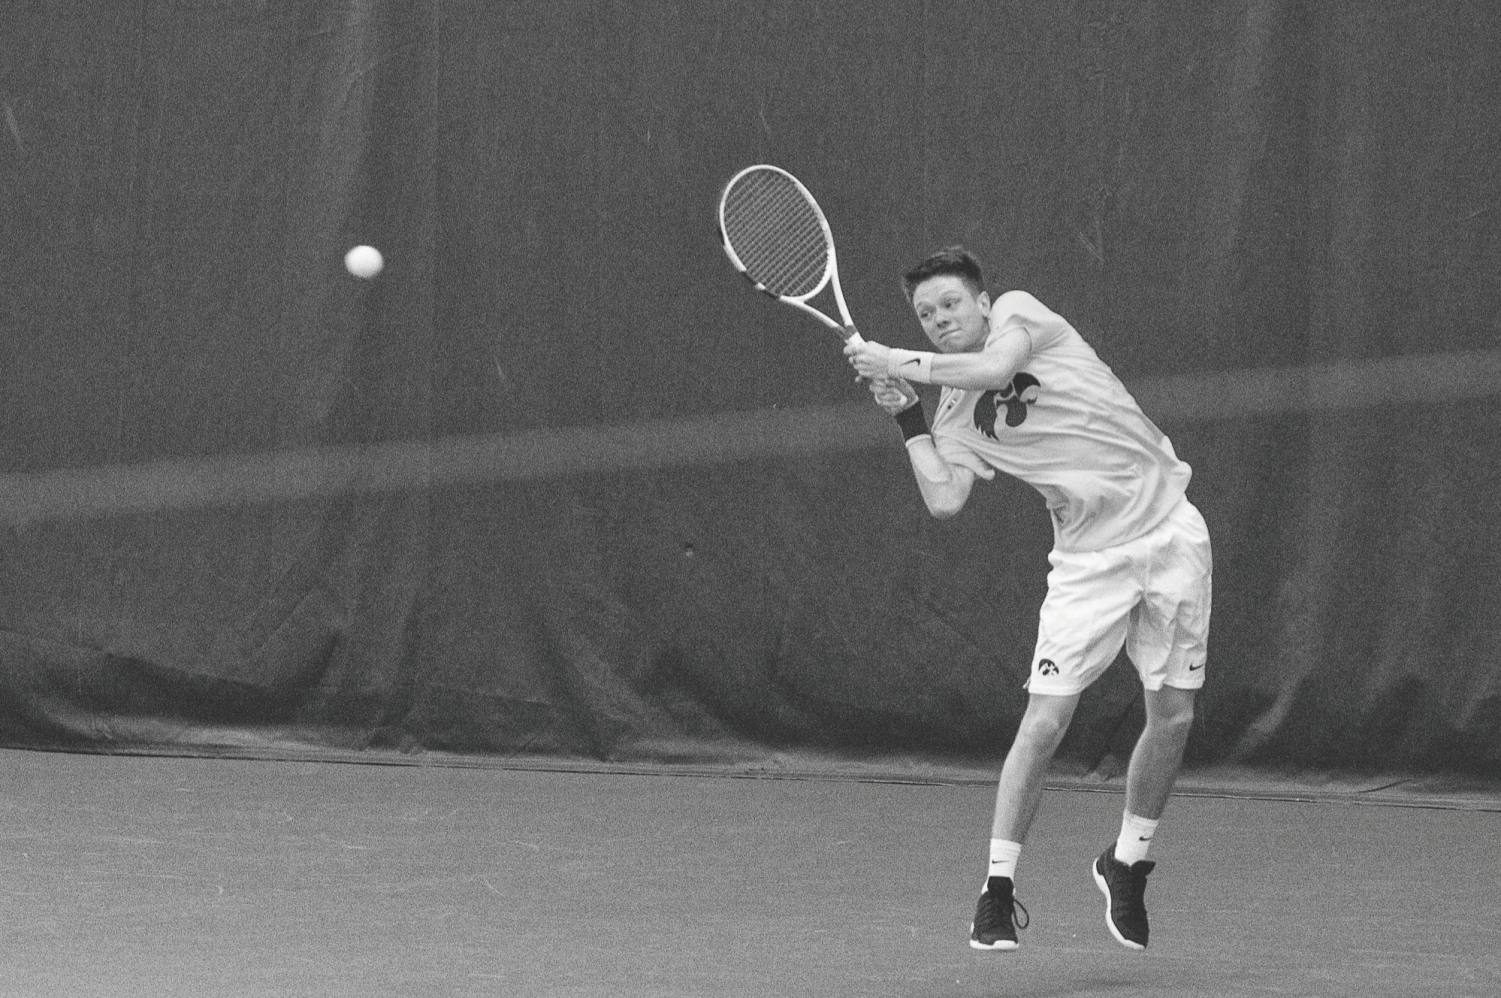 Iowa's Jason Kerst returns the ball against Creighton at the Hawkeye Tennis & Recreation Complex on Feb. 16. The Hawkeyes defeated the Bluejays, 7-0.